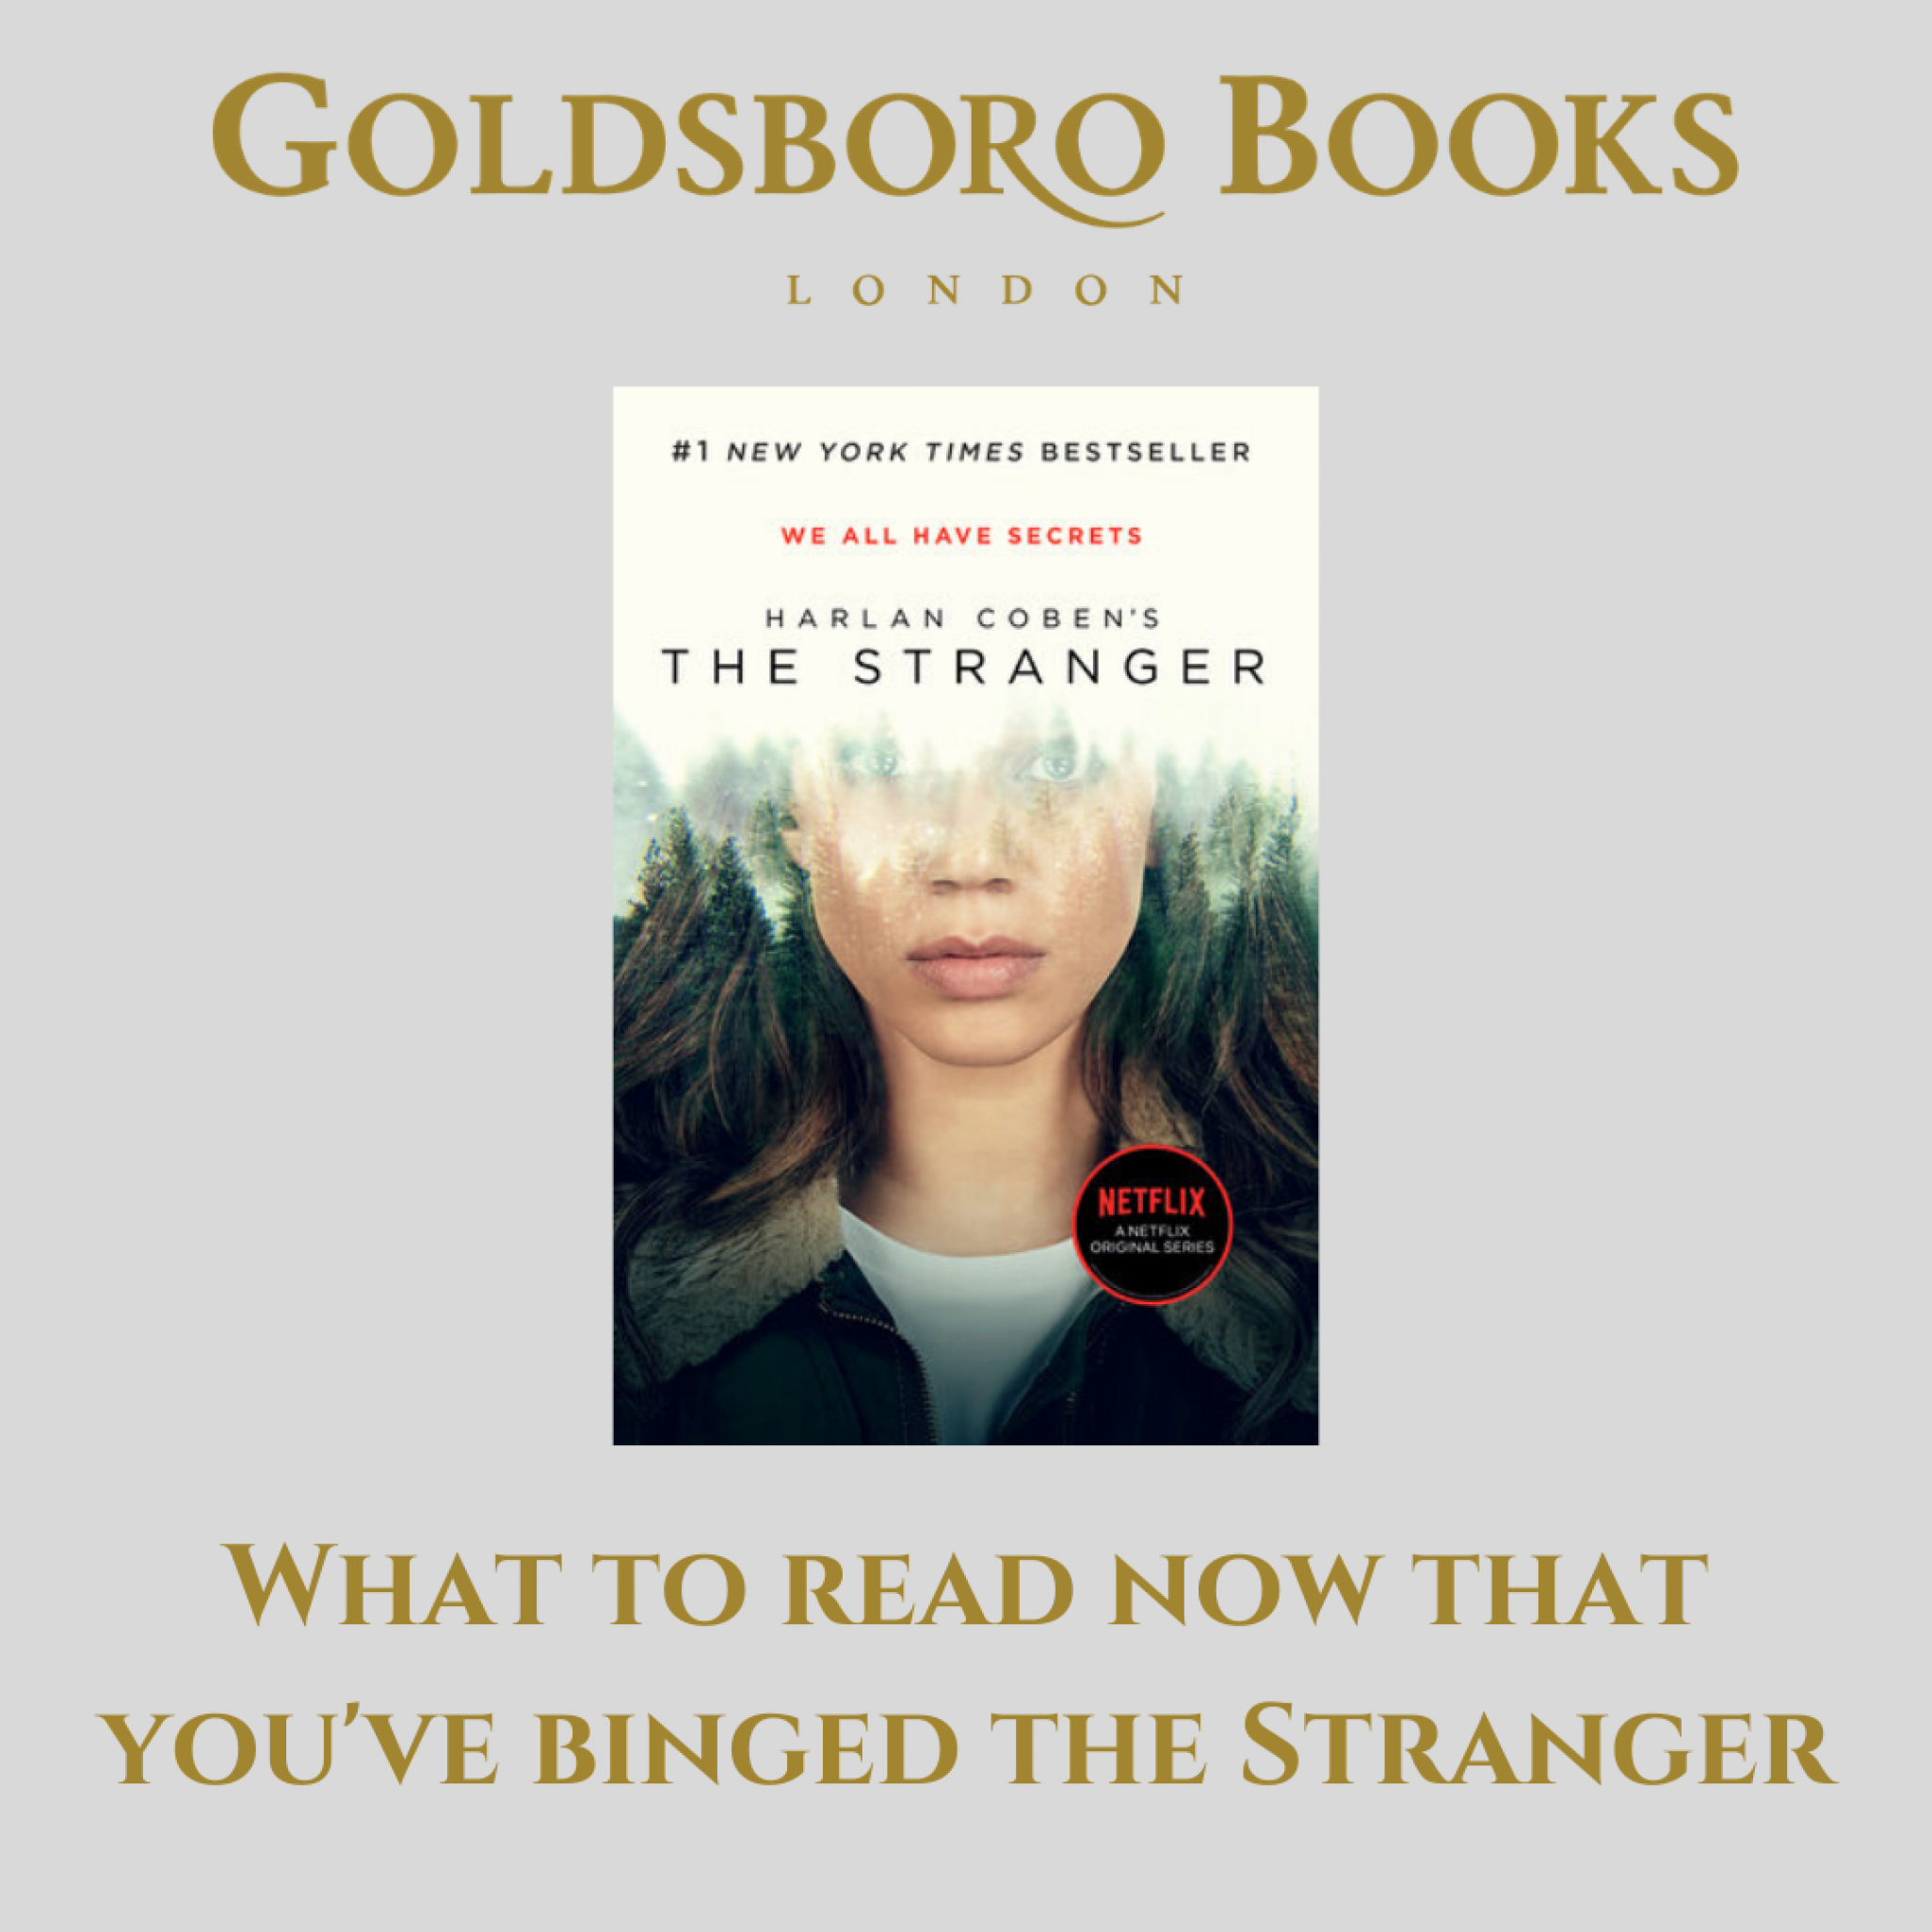 You've Binged The Stranger. Now What?